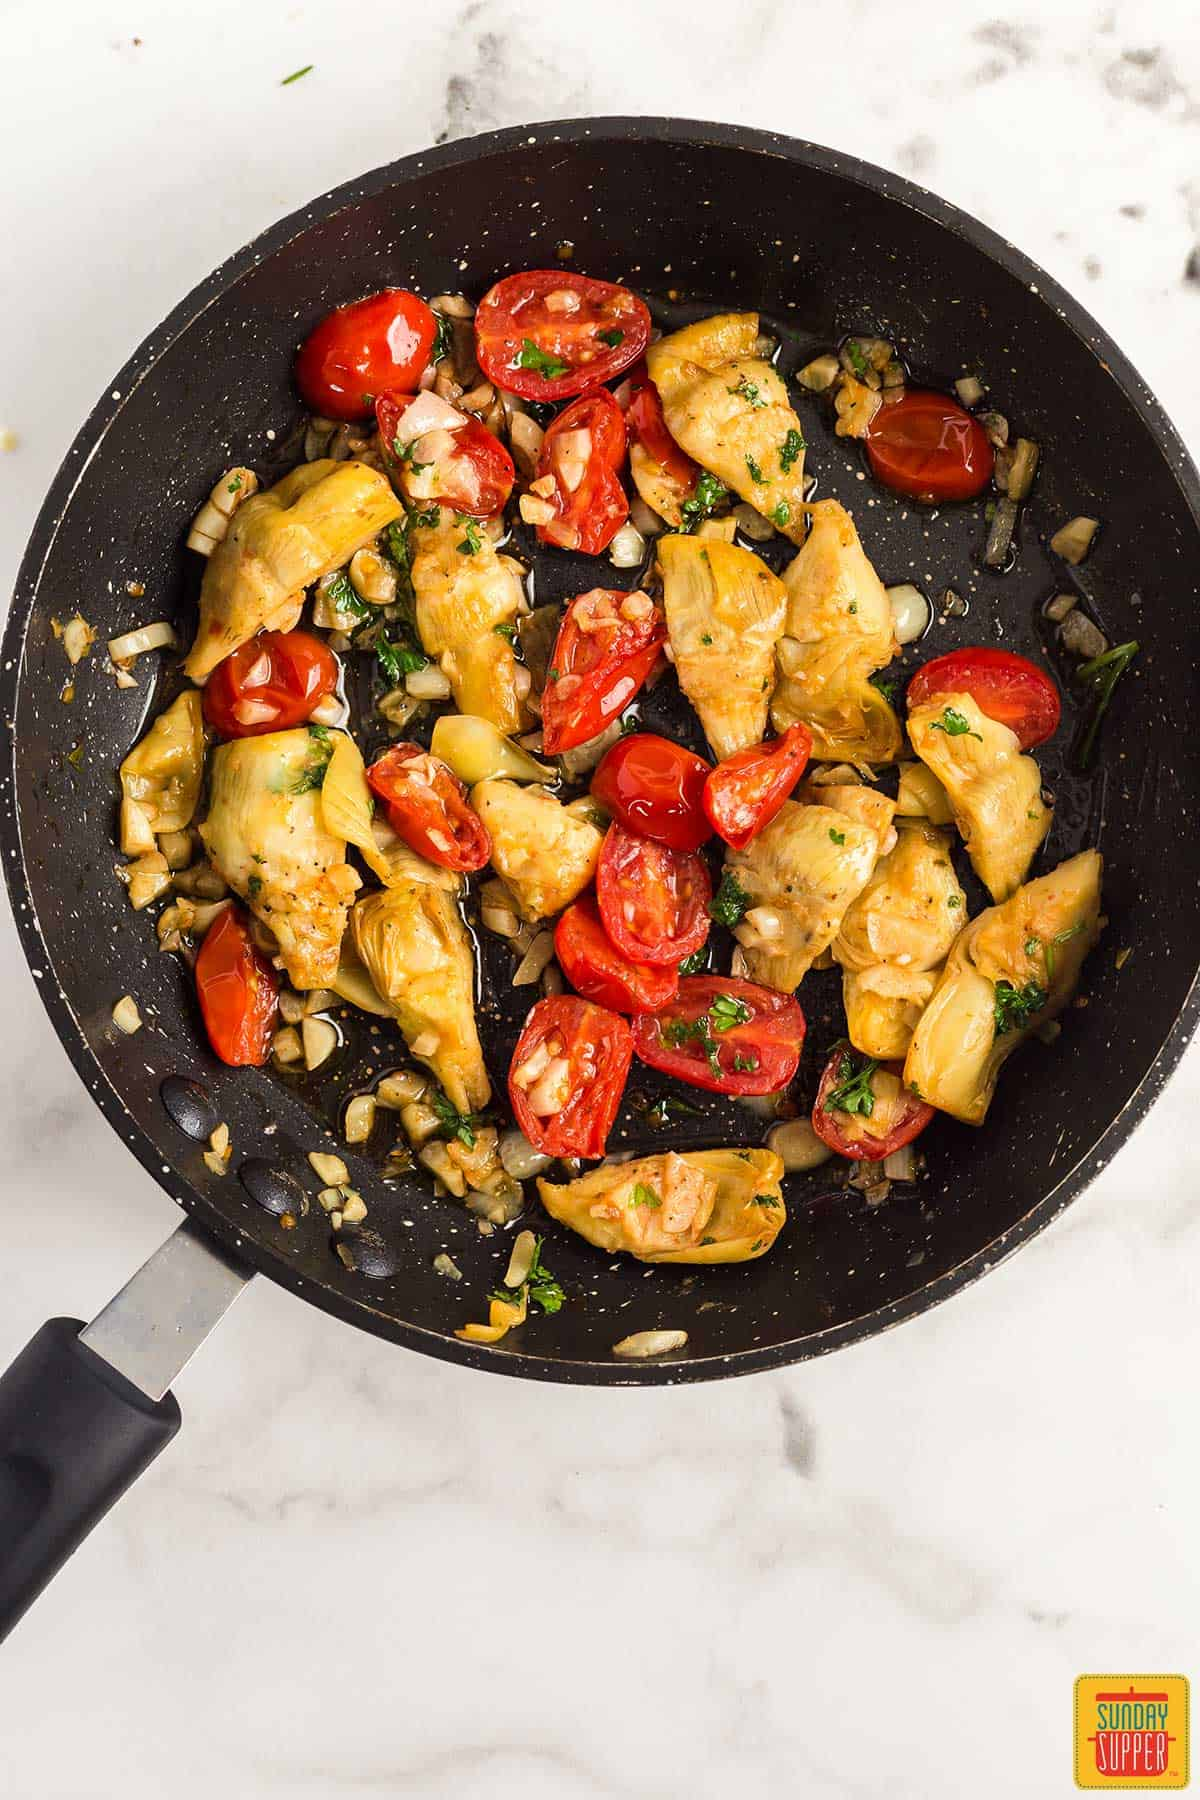 Garlic, artichokes, and tomatoes cooking in a skillet